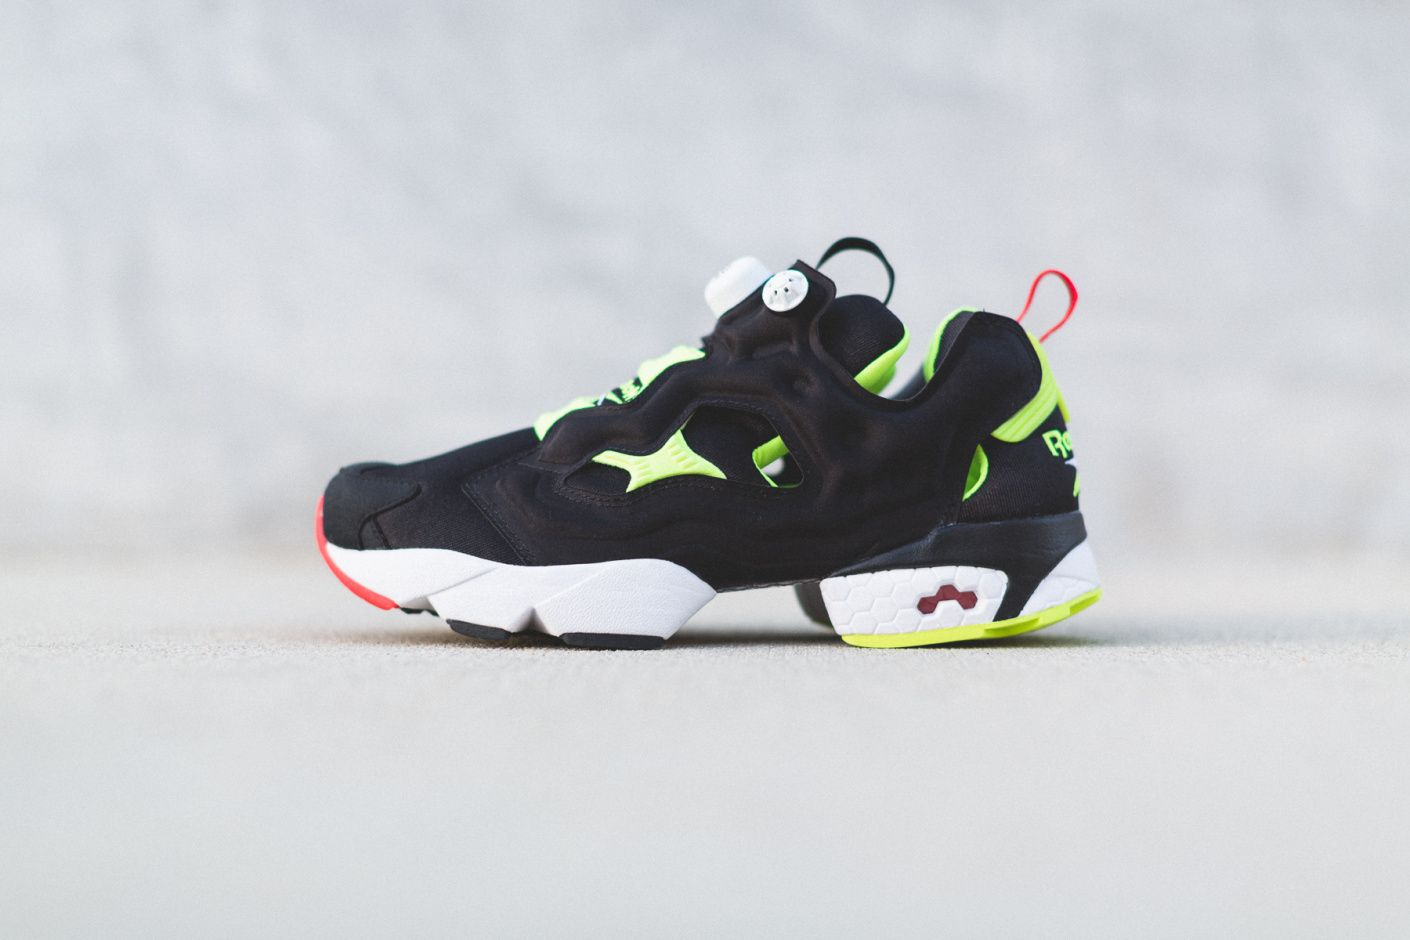 adidas & Reebok's Instapump Fury Boost: Here's Your First Look